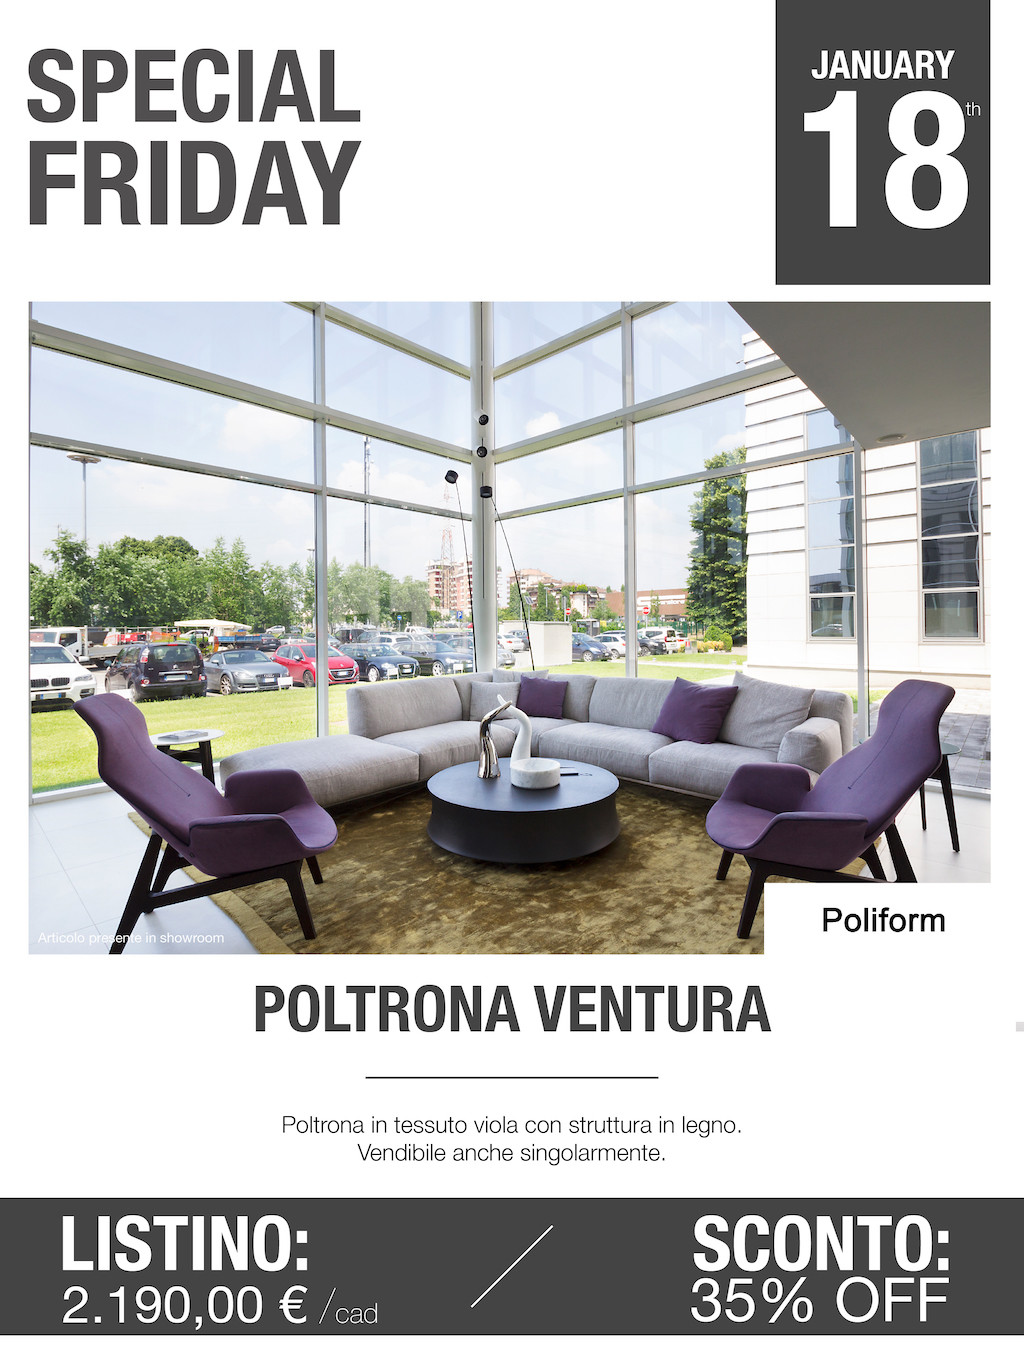 poltrona ventura poliform Special Friday